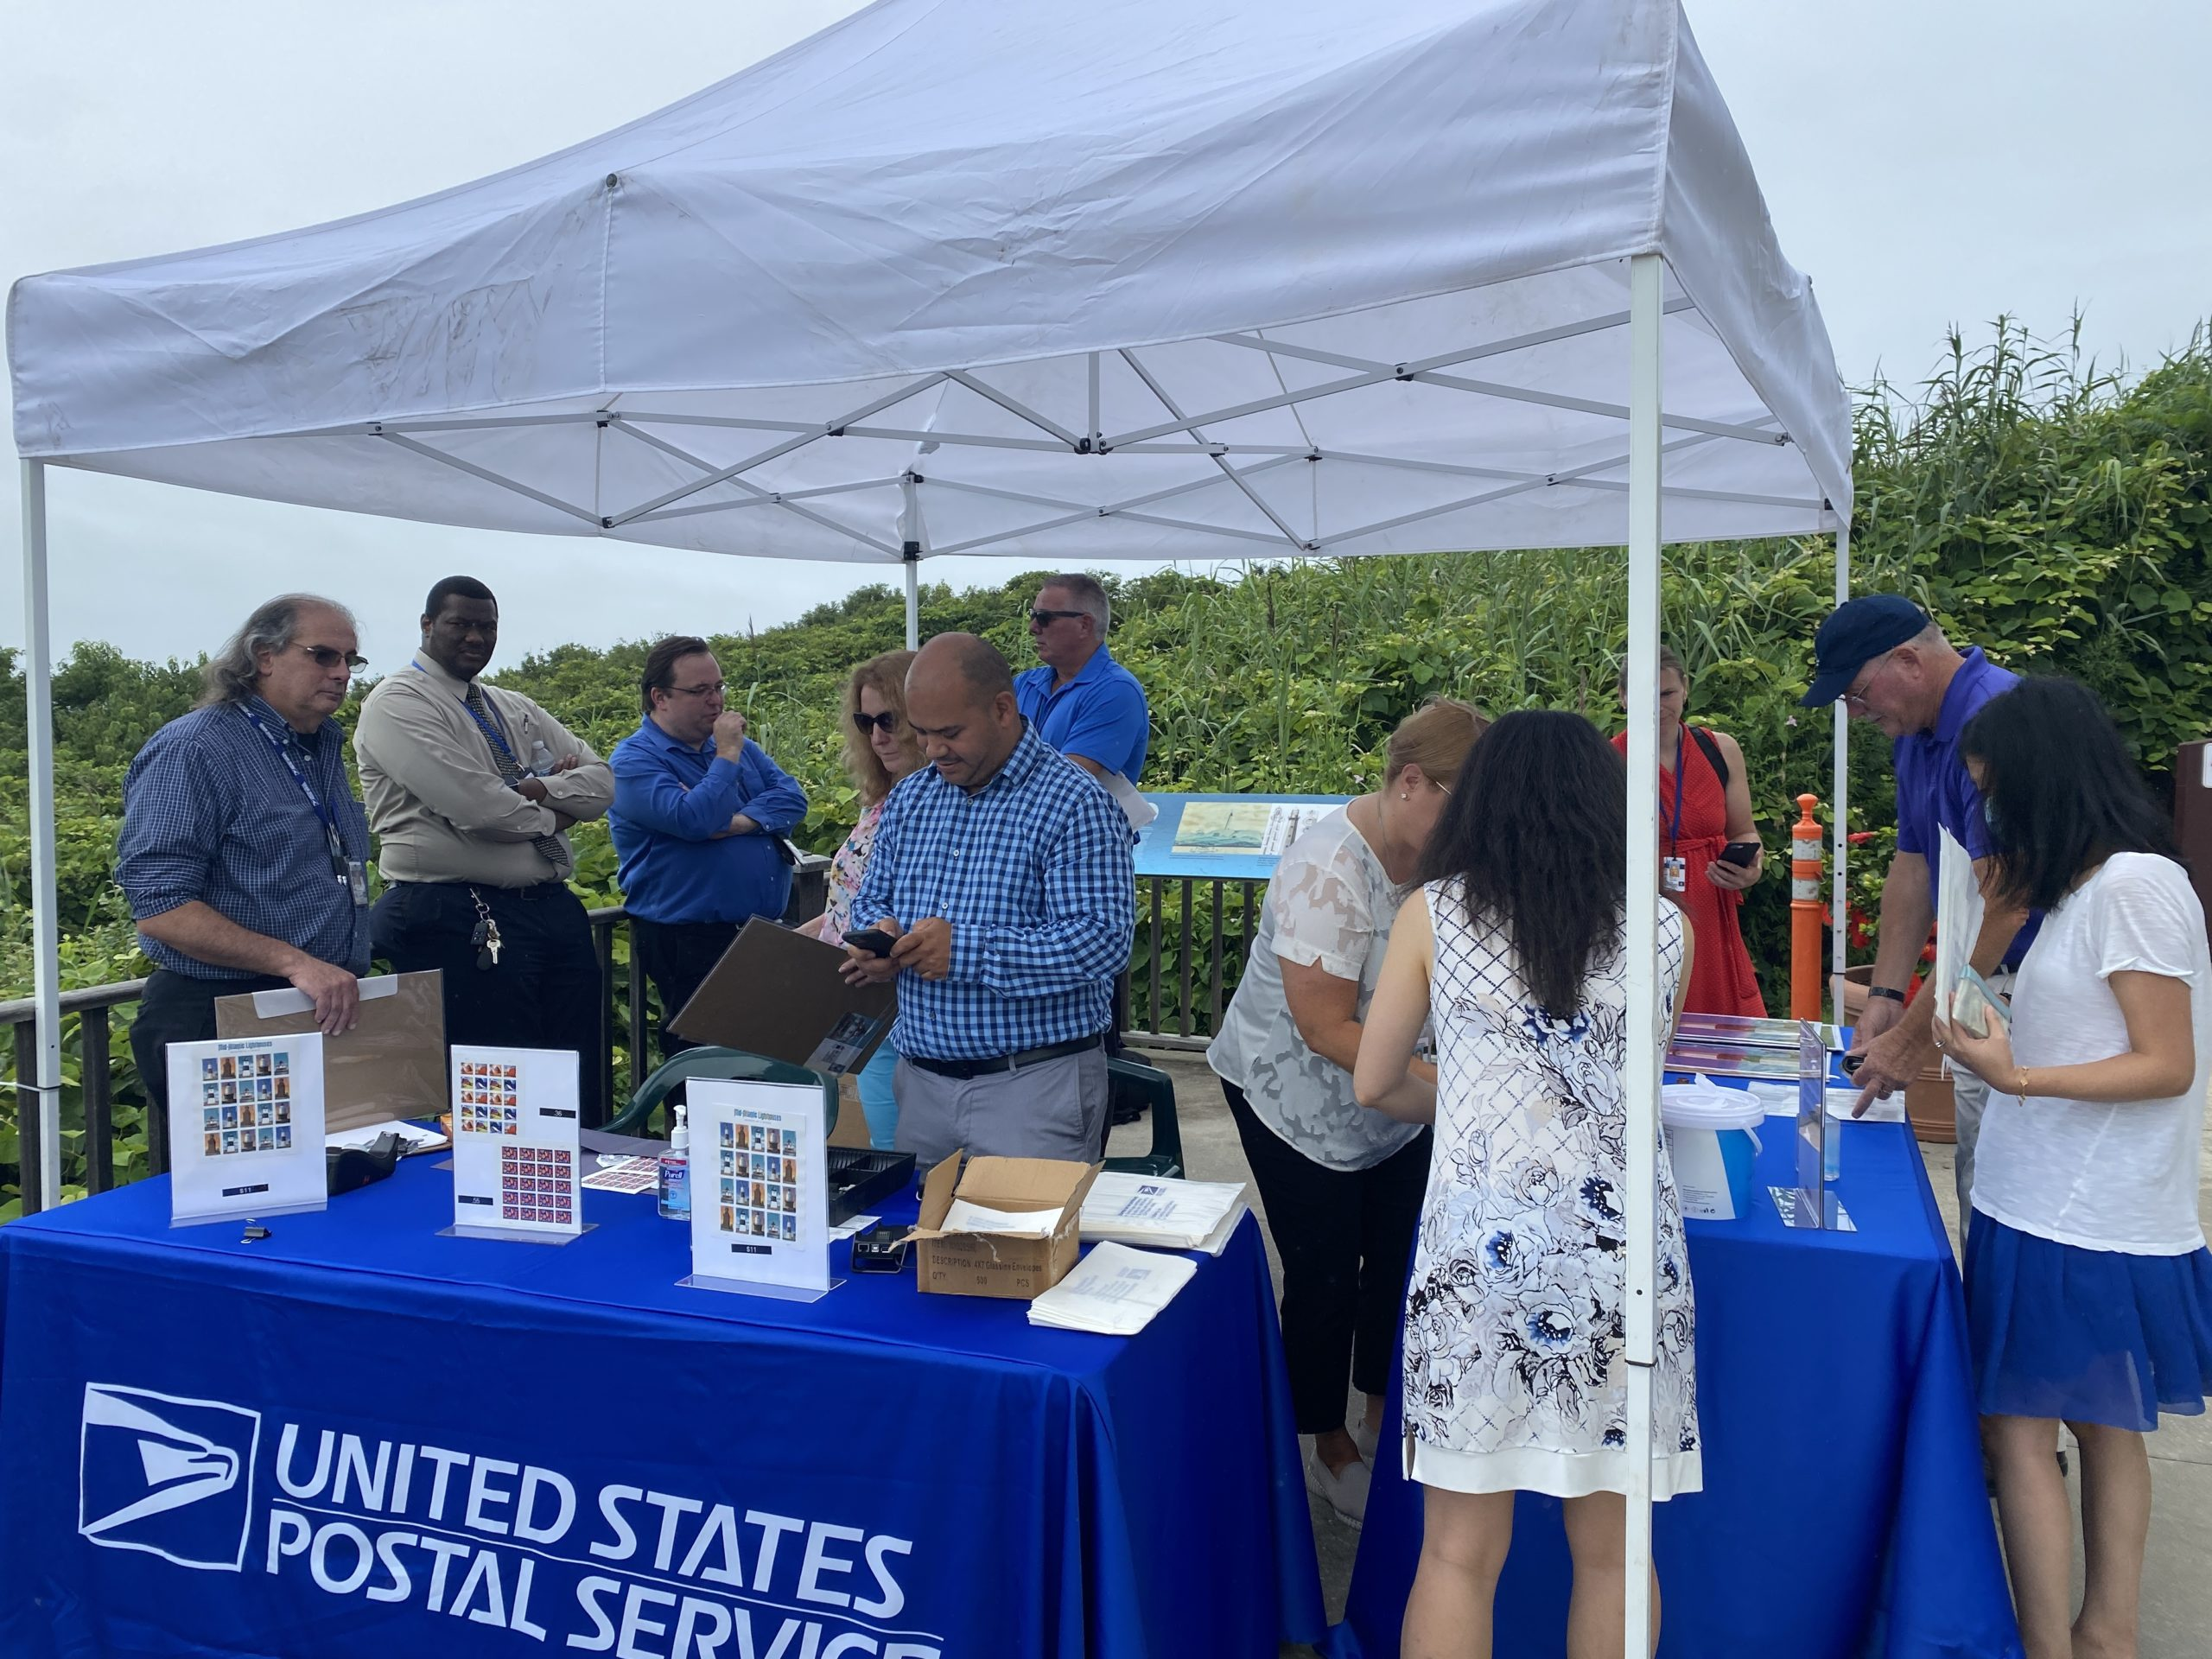 The United States Postal Service held an event in August at the Montauk Lighthouse to celebrate the rollout of the stamps. COURTESY MIA CERTIC